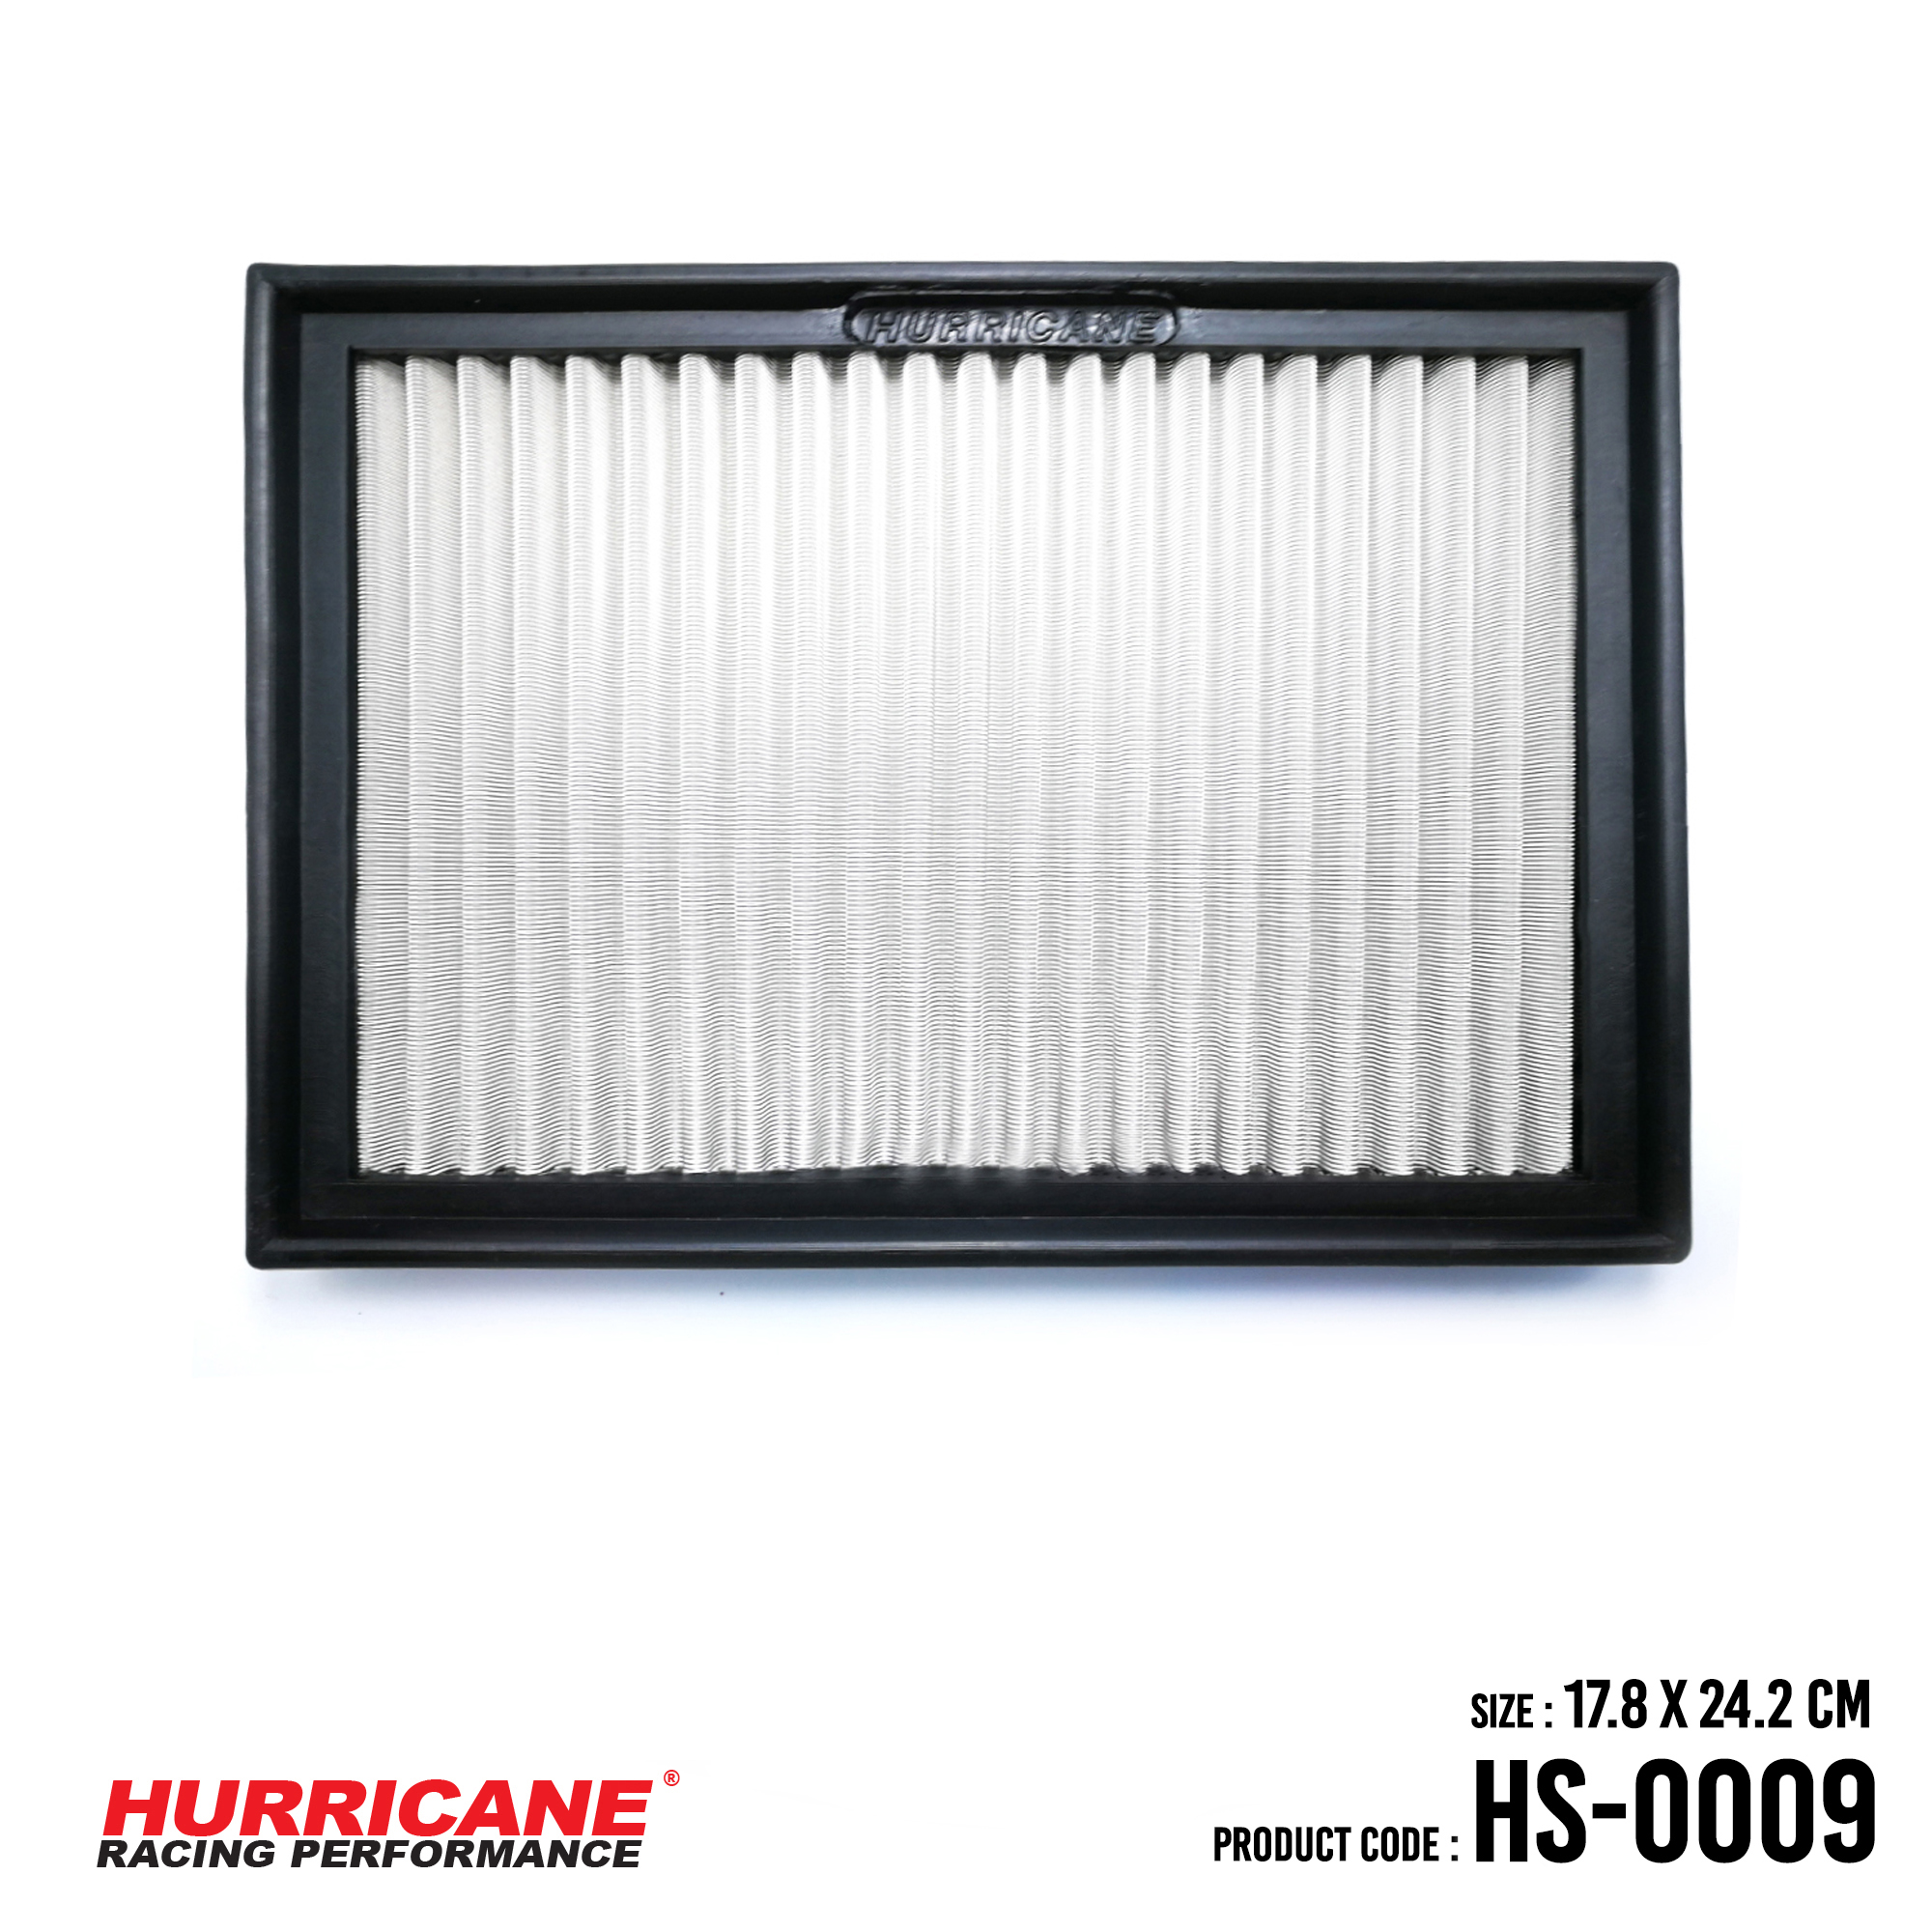 HURRICANE STAINLESS STEEL AIR FILTER FOR HS-0009 BMW